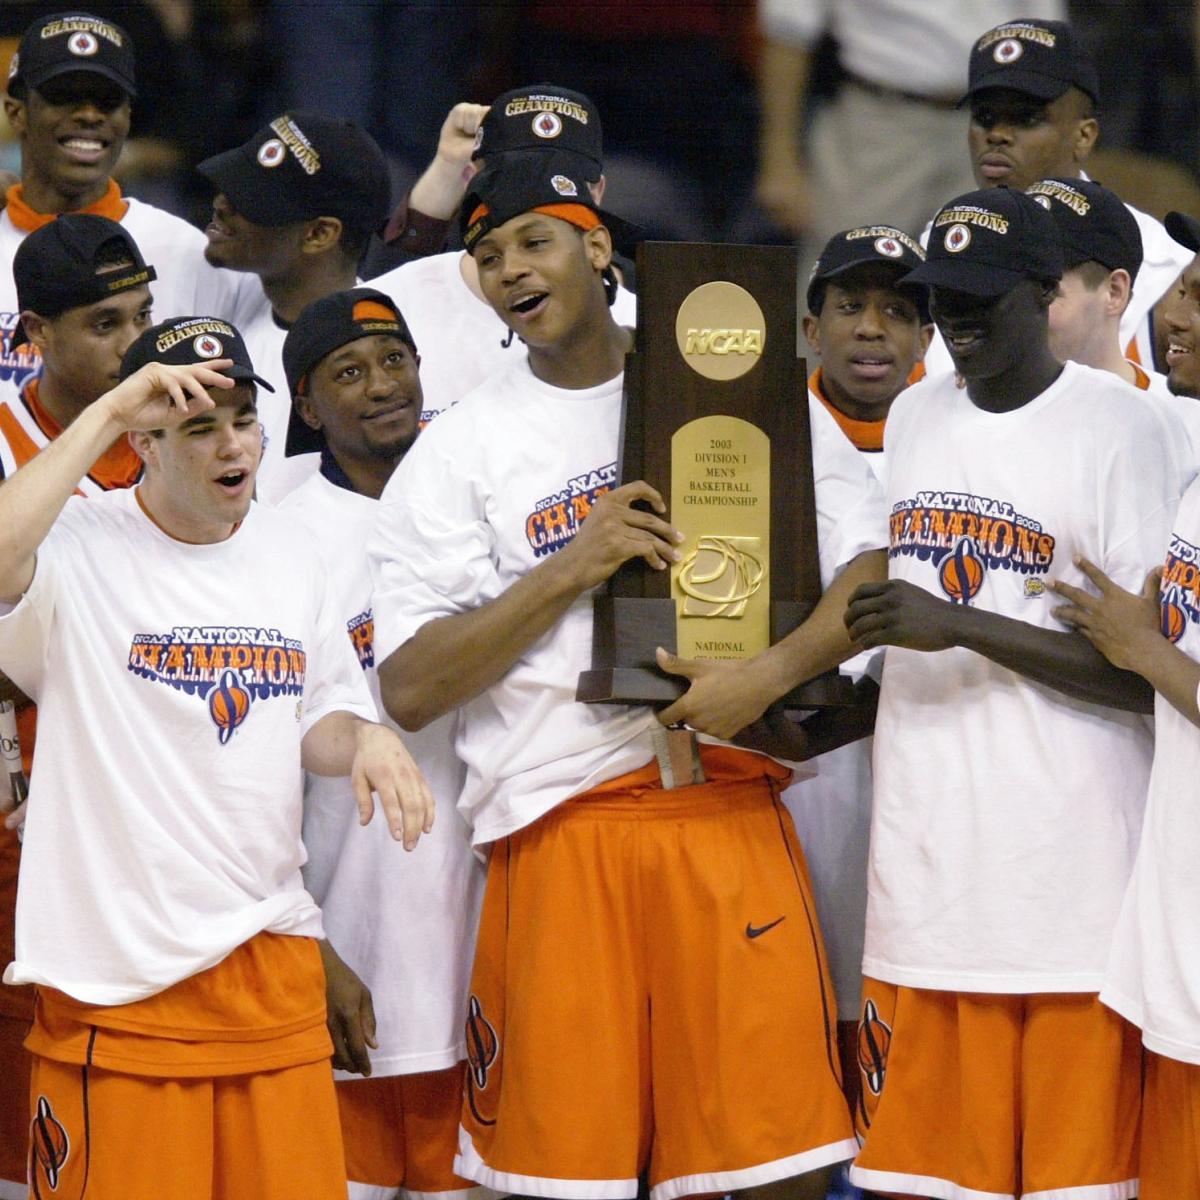 e085931a7f1 Syracuse Basketball: Carmelo Anthony and the 10 Best Freshmen in Orange  History | Bleacher Report | Latest News, Videos and Highlights